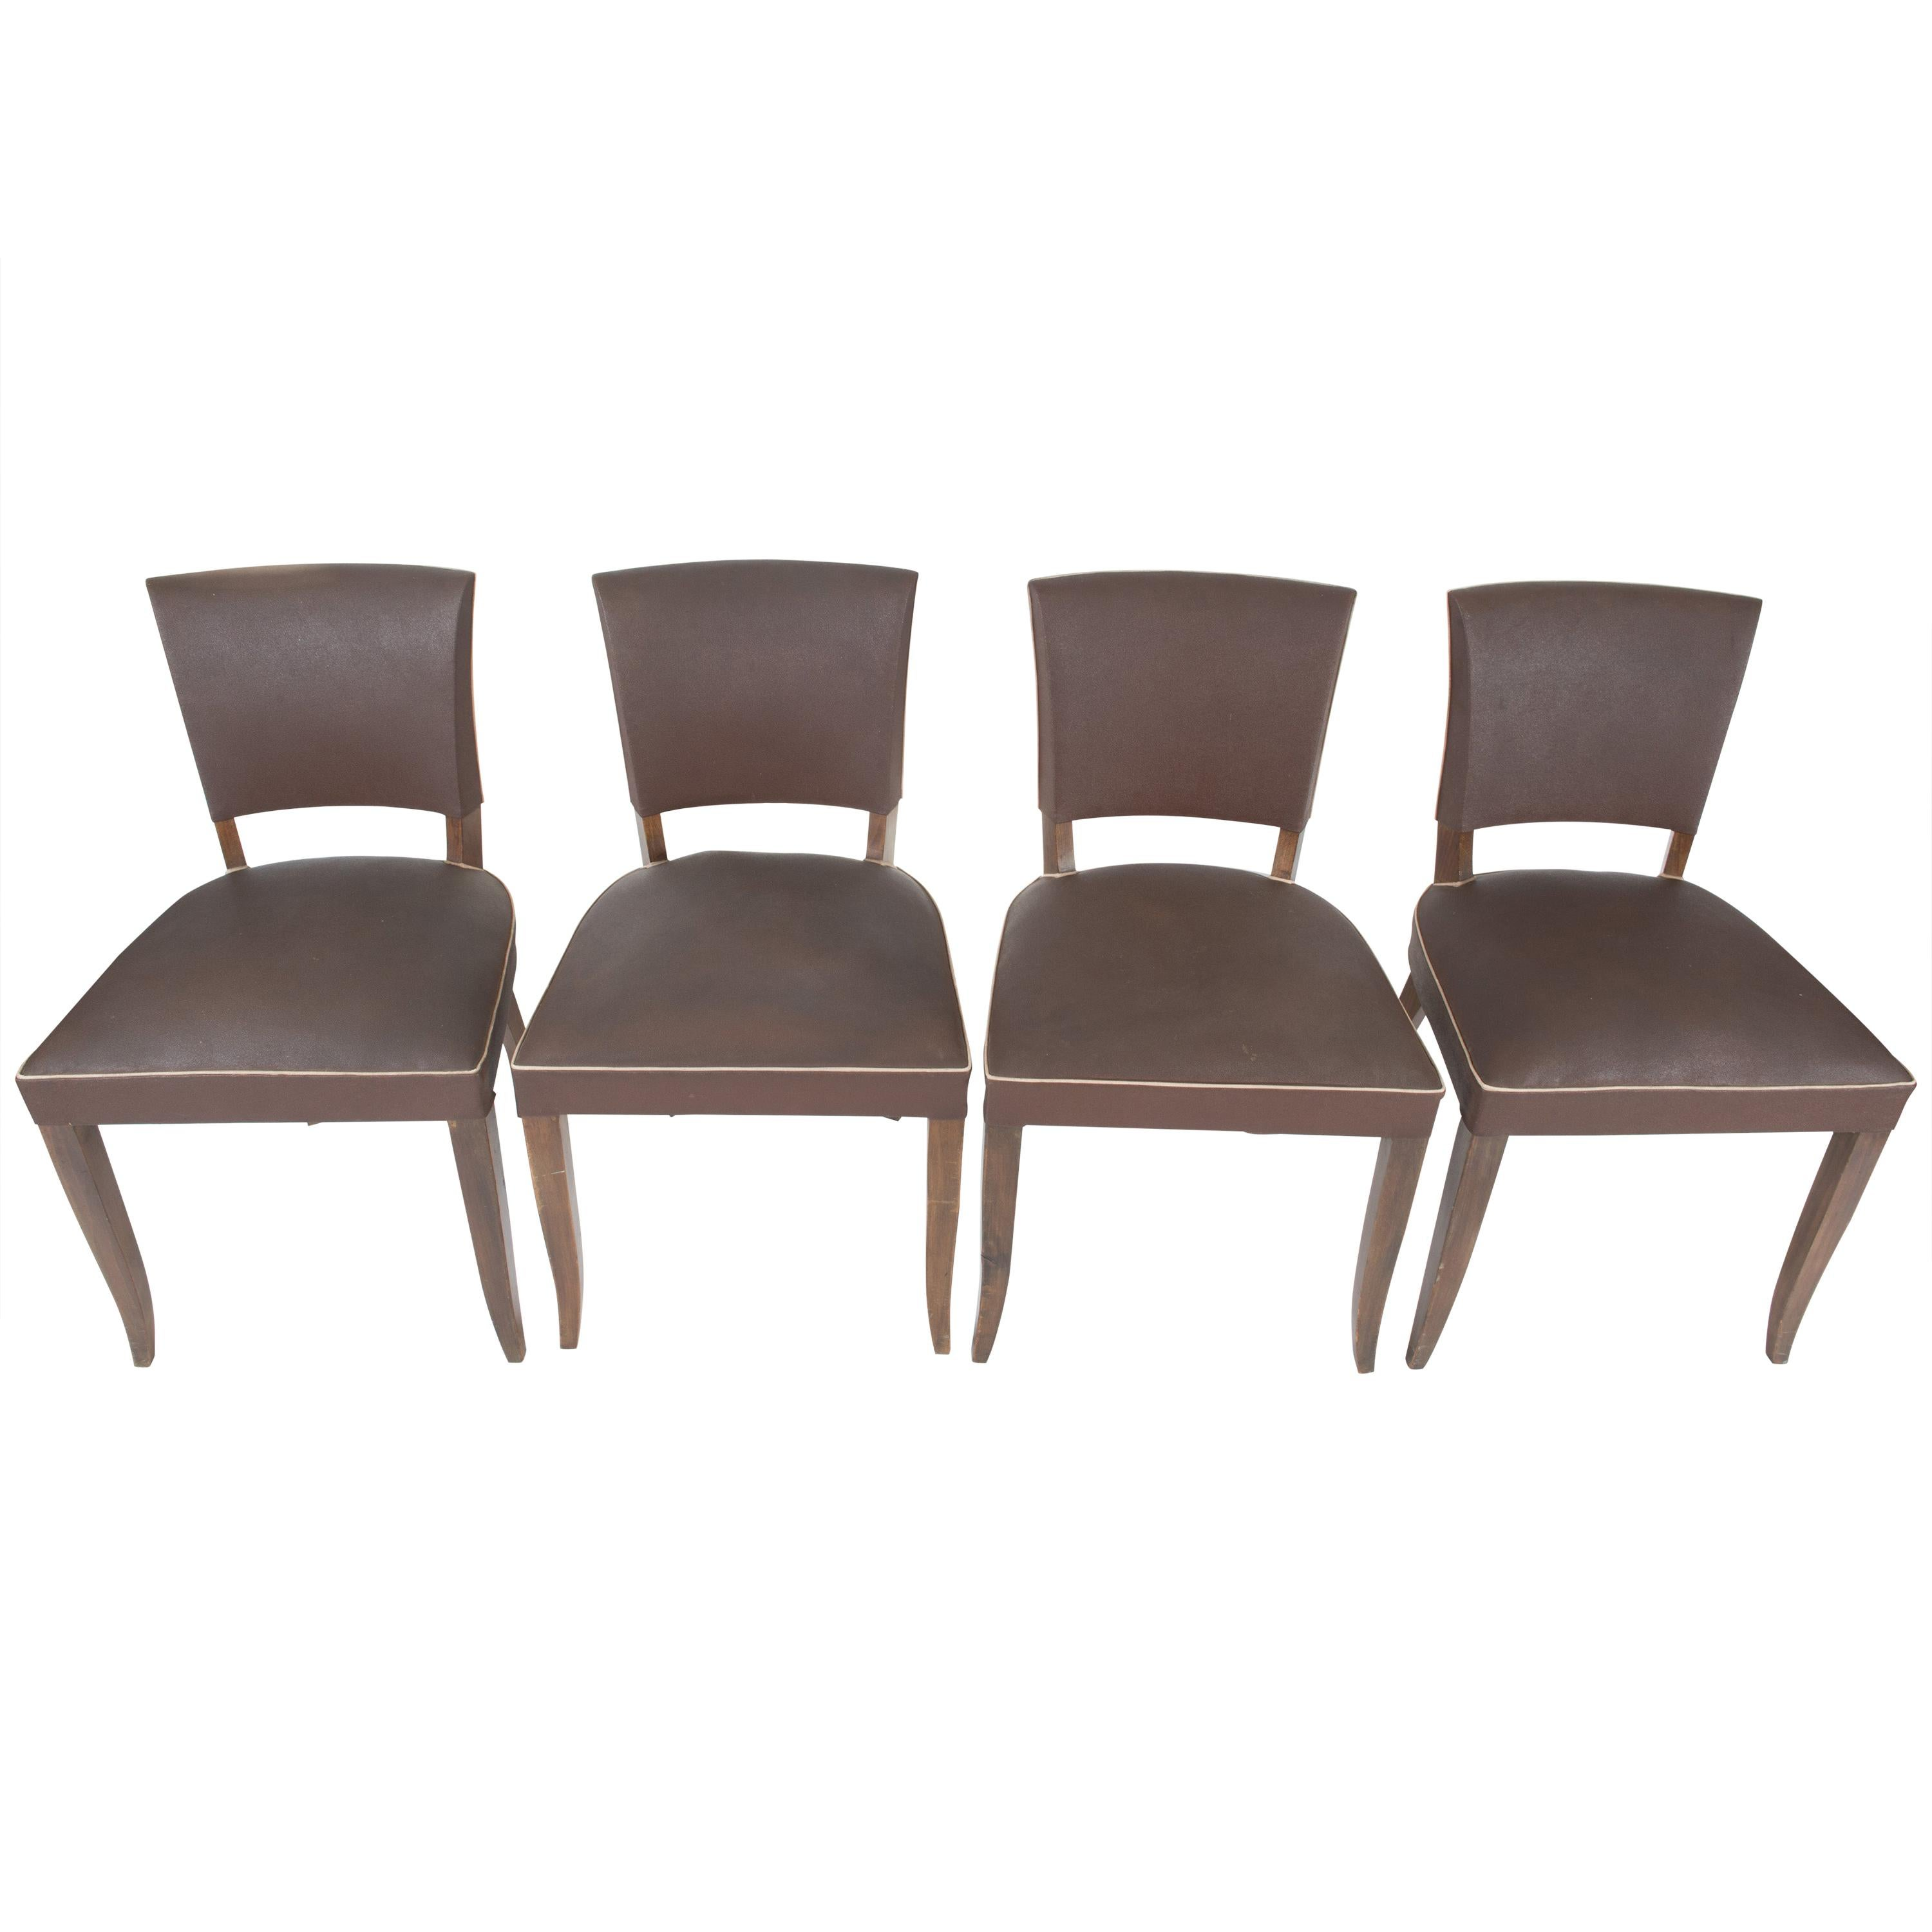 Set of 4 French 1950s Dining Chairs, Brown